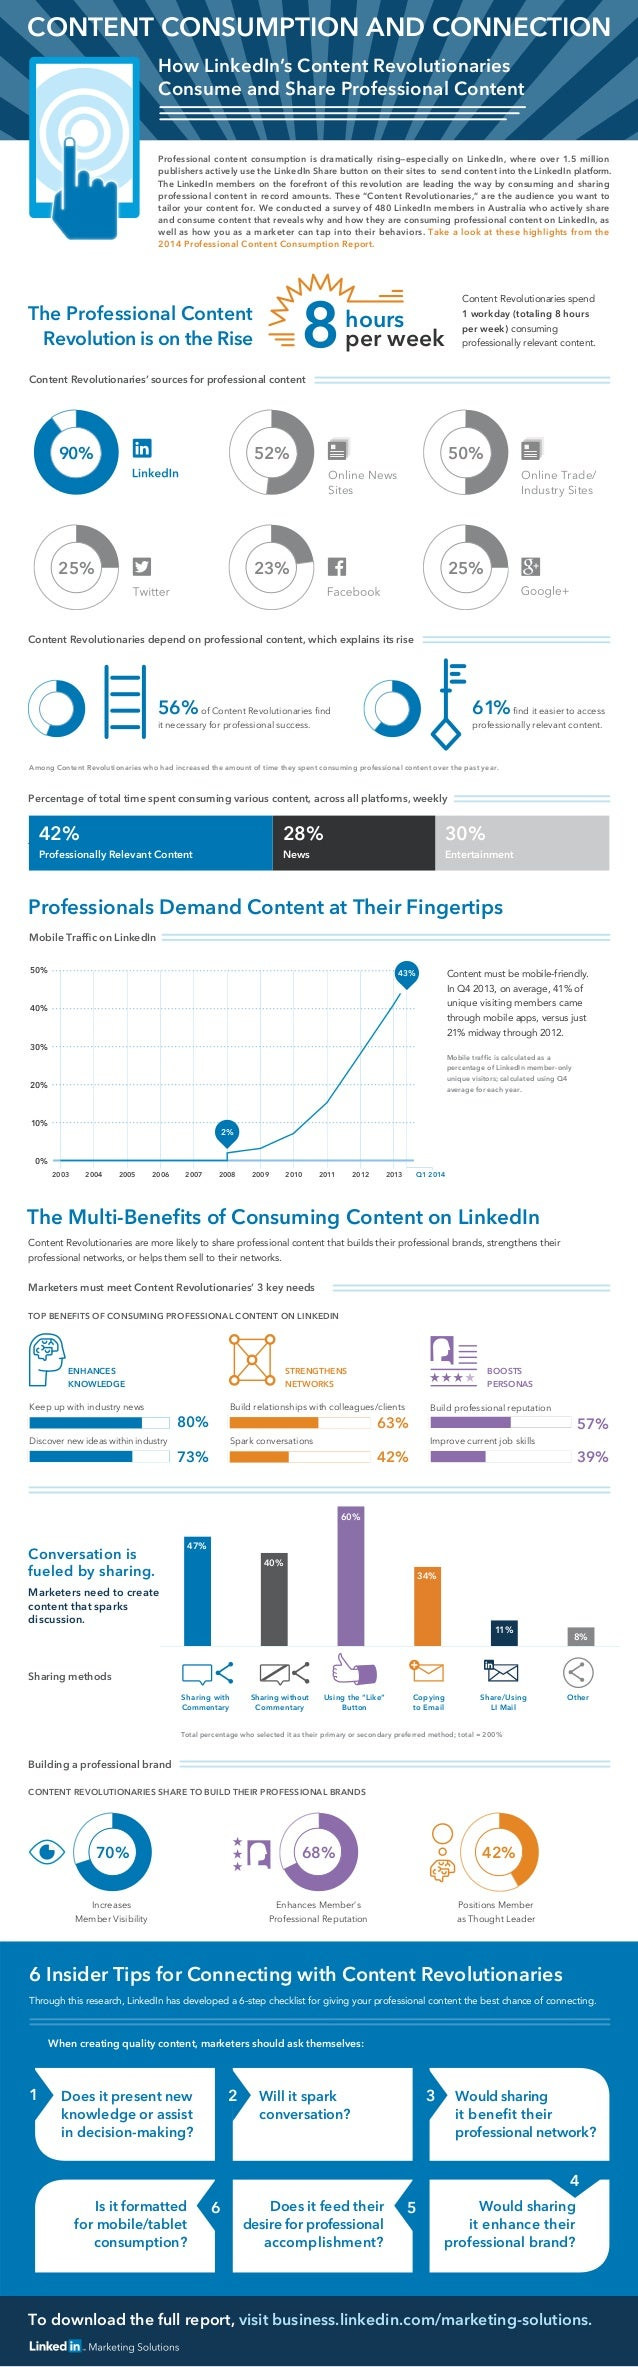 To download the full report, visit business.linkedin.com/marketing-solutions. 56%of Content Revolutionaries find it necessa...